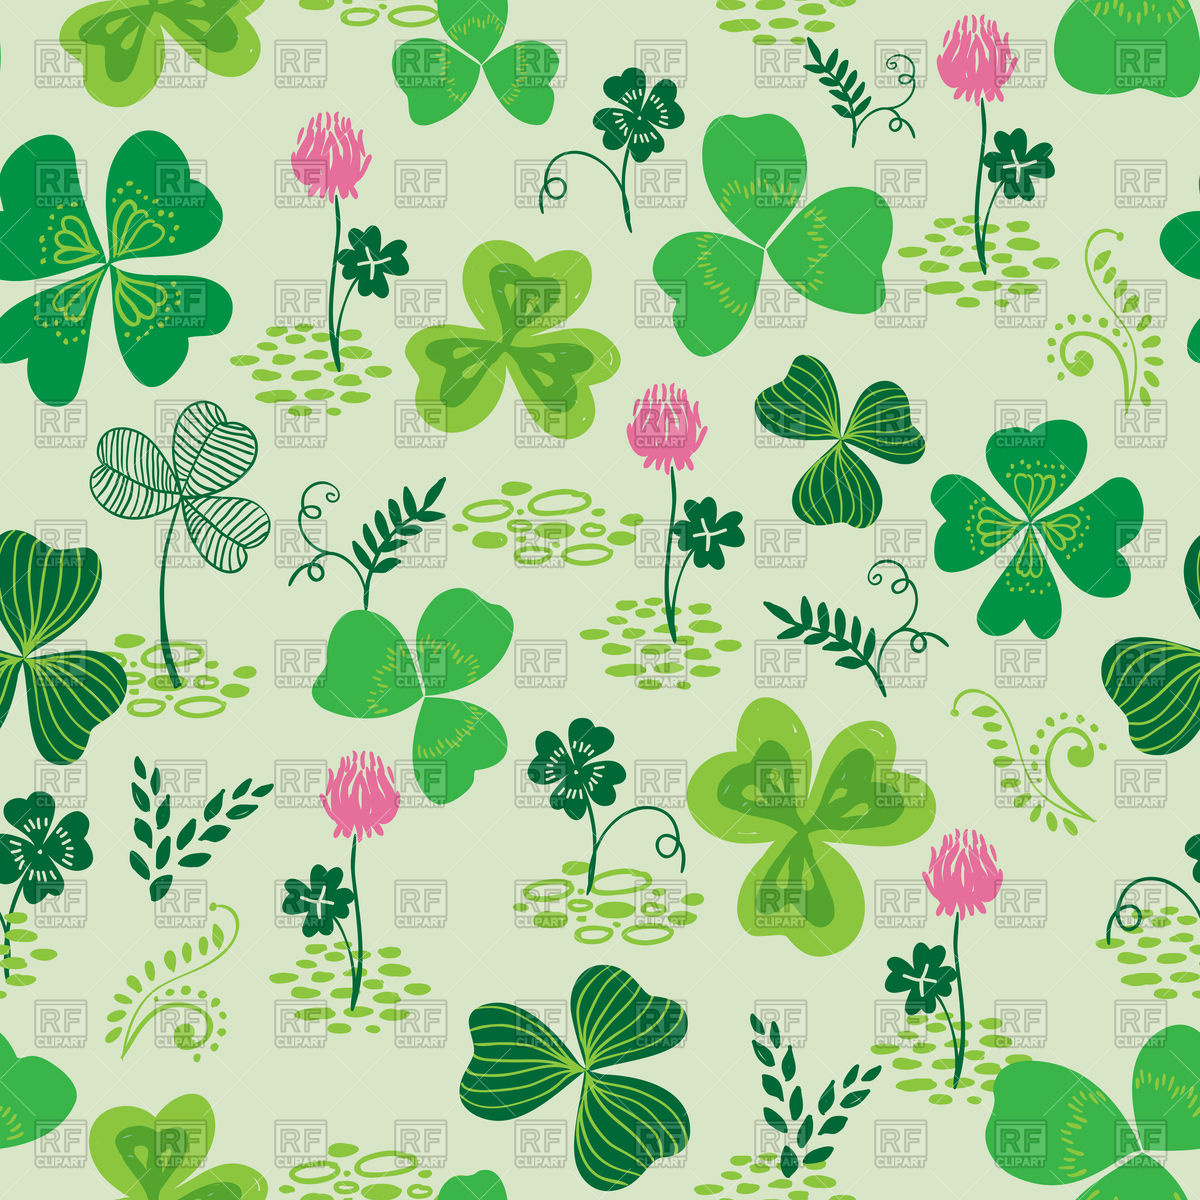 Seamless hand drawn clover or trefoil pattern Vector Image #100799.